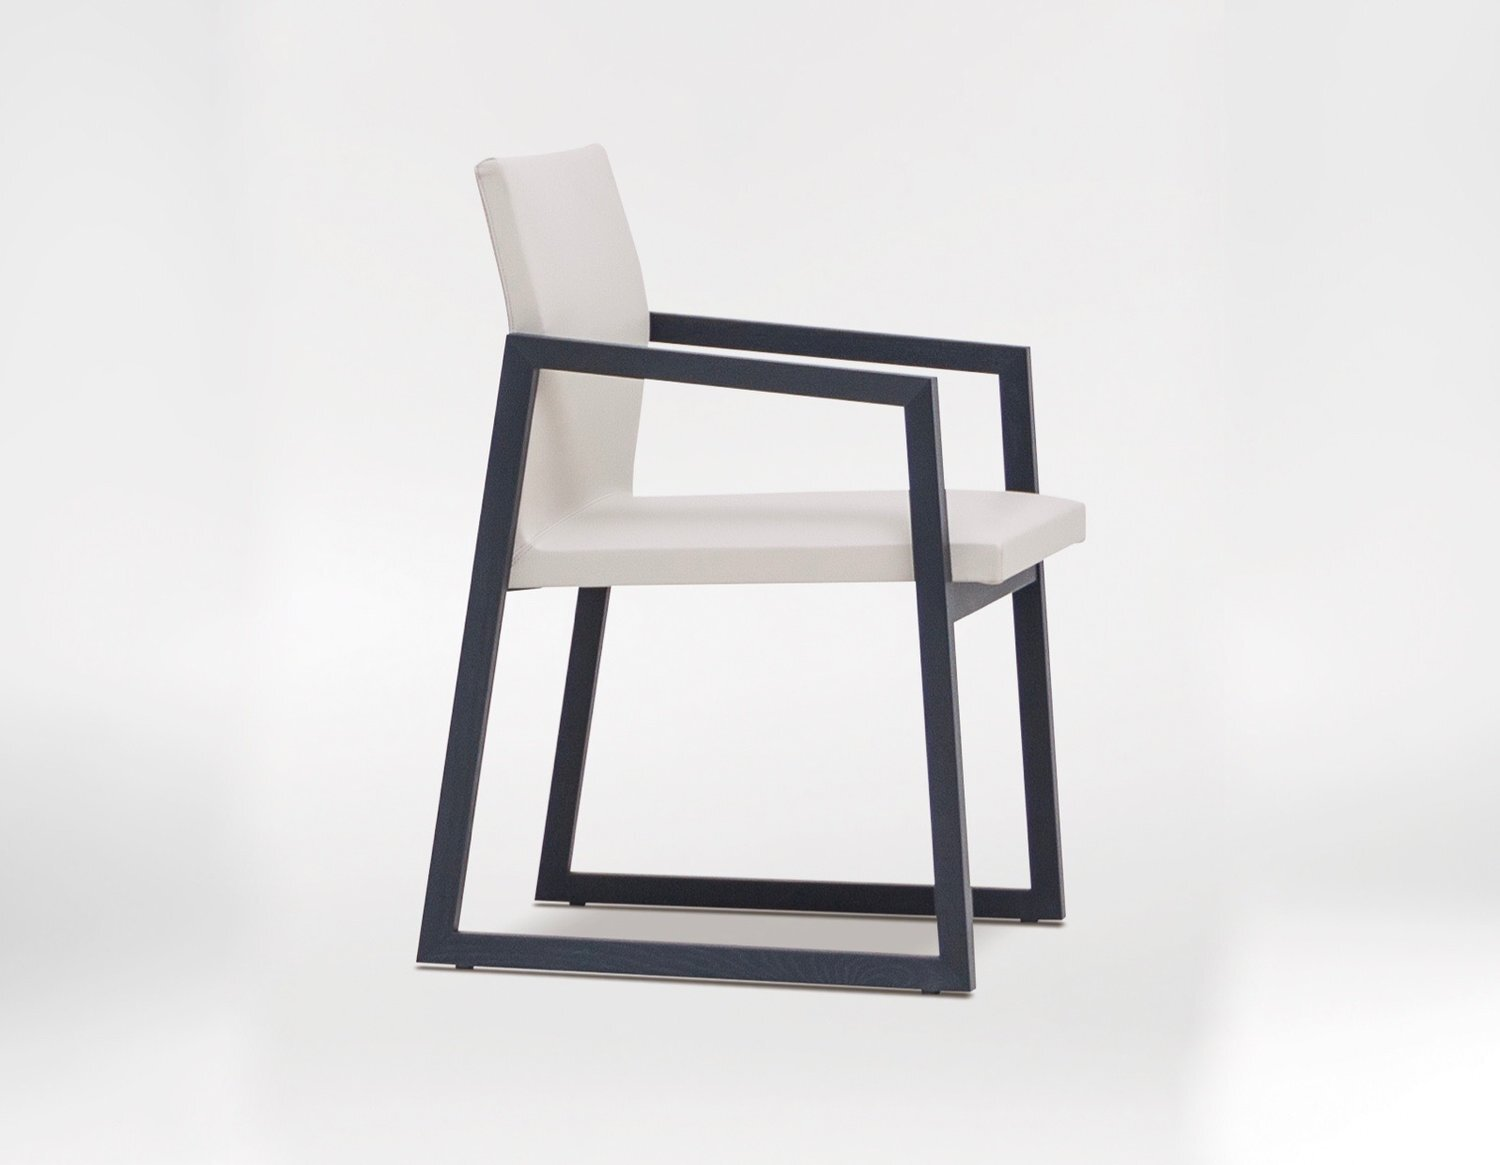 Grid chair - Abstract framework highlights slim and neat aesthetics and an elegant style.